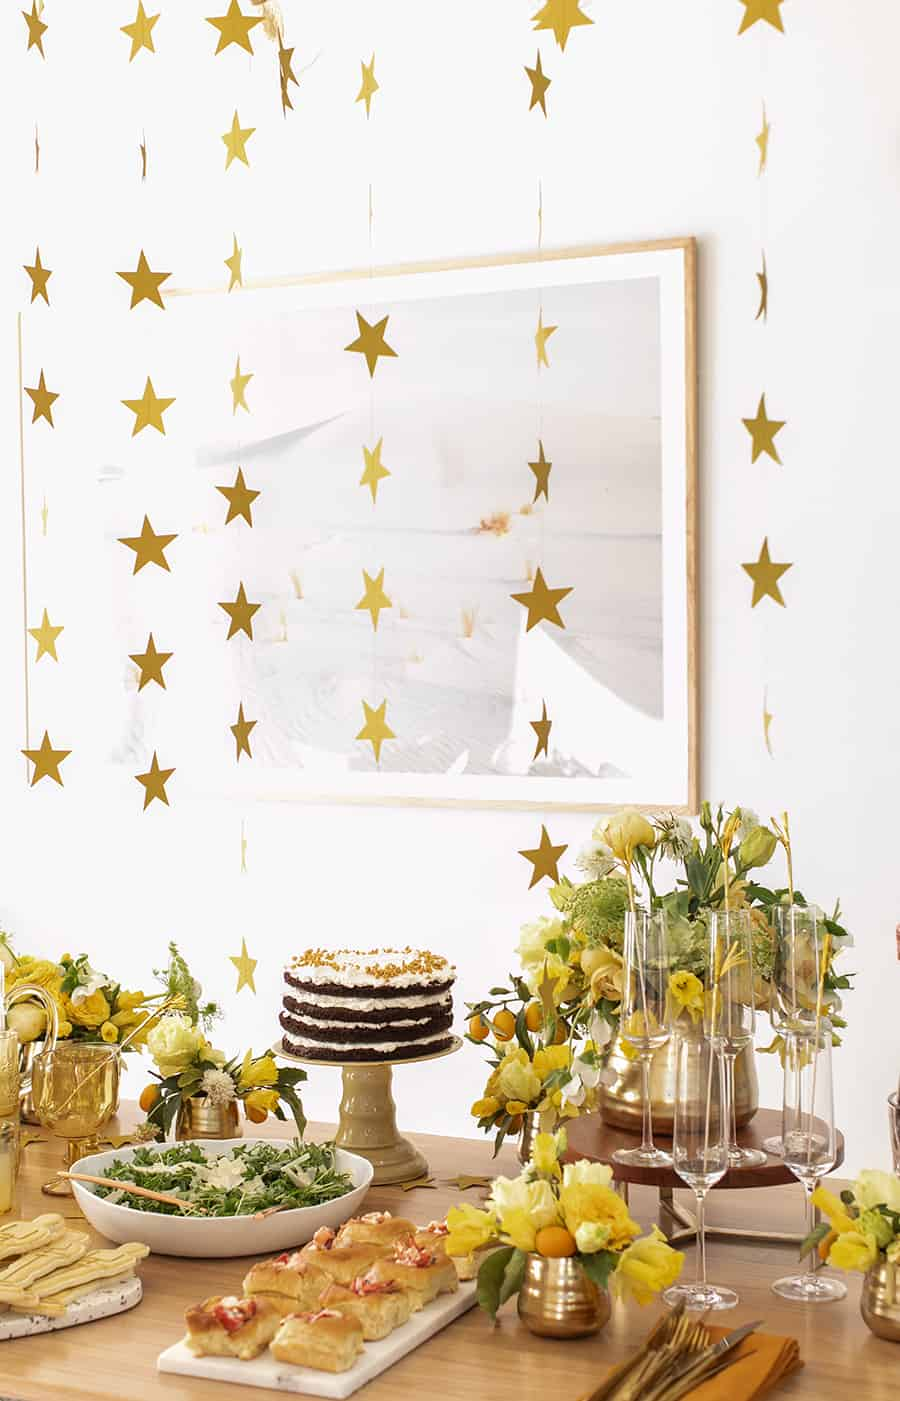 Gold stars hanging from ceiling for Oscar party decorations.